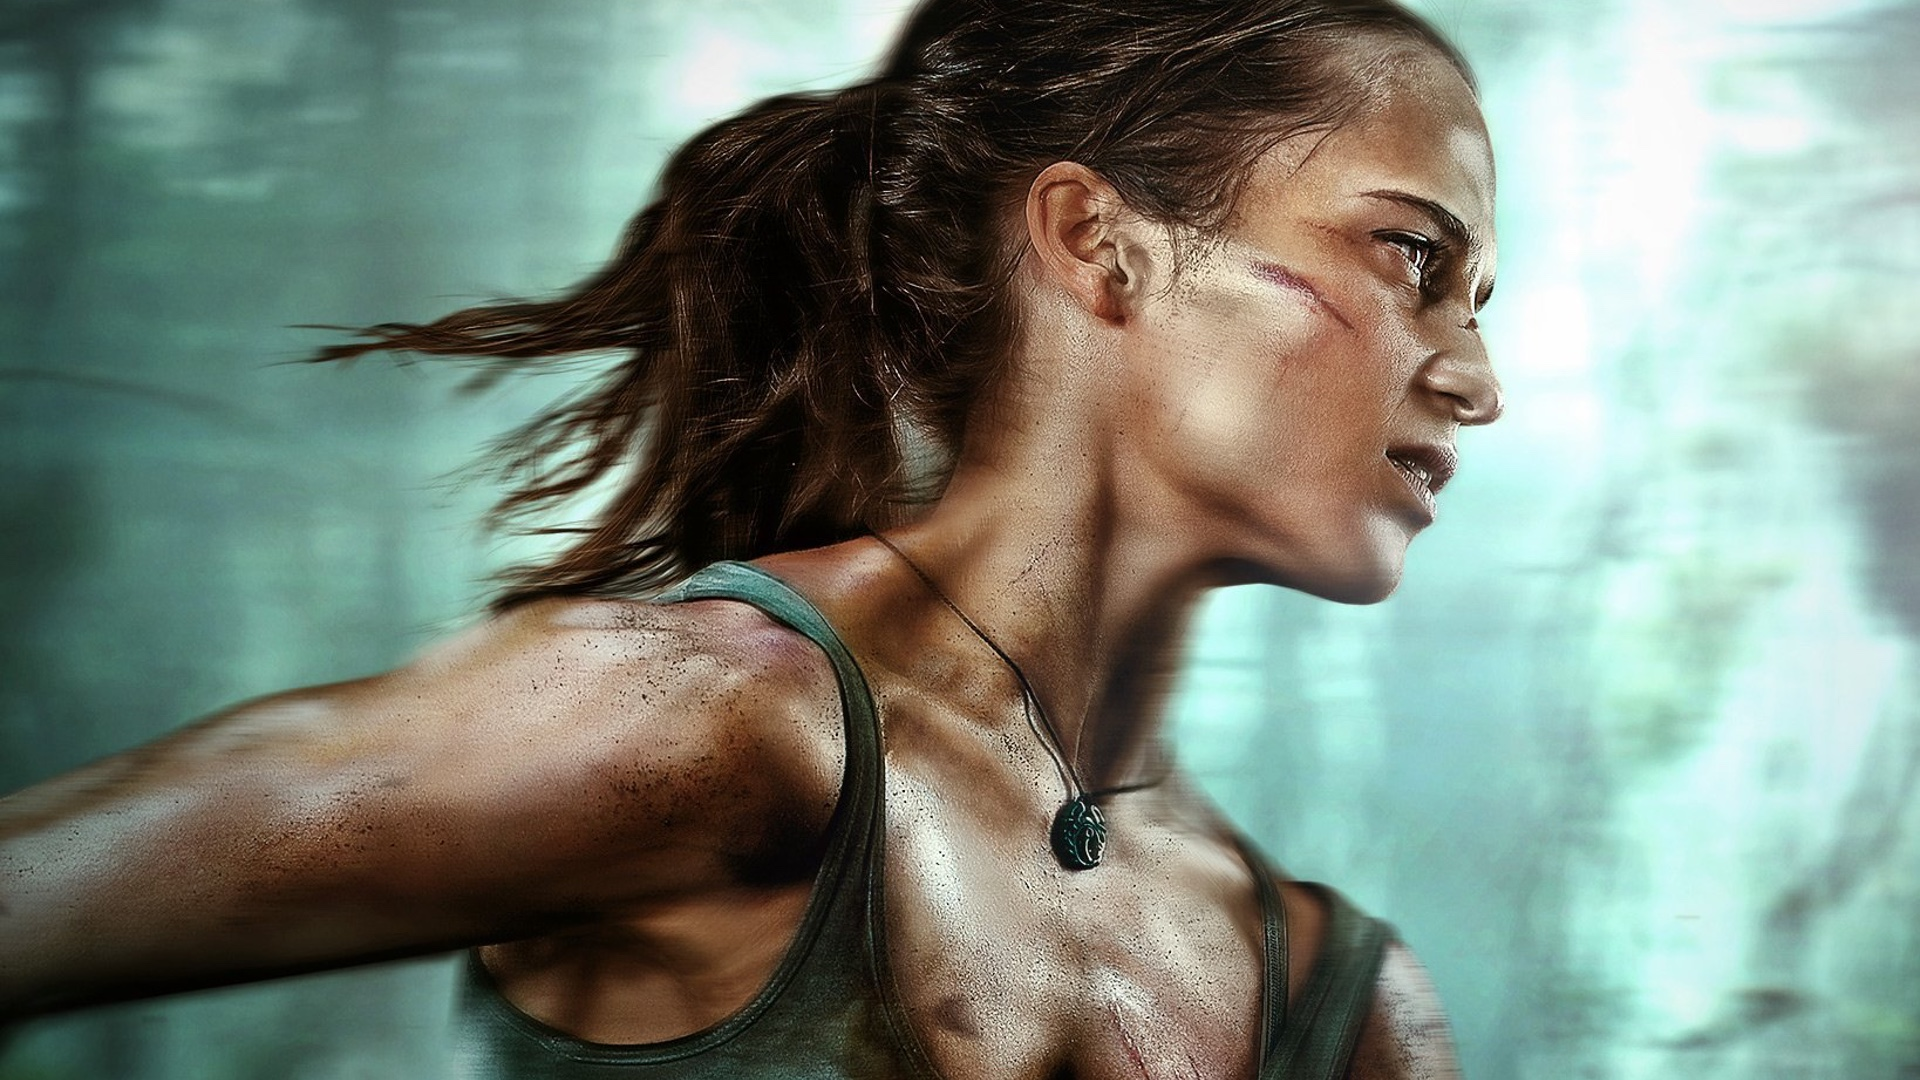 5b20cb44d4c478 Lara Croft Finds Herself in Ocean Danger in Action-Packed Clip From TOMB  RAIDER-